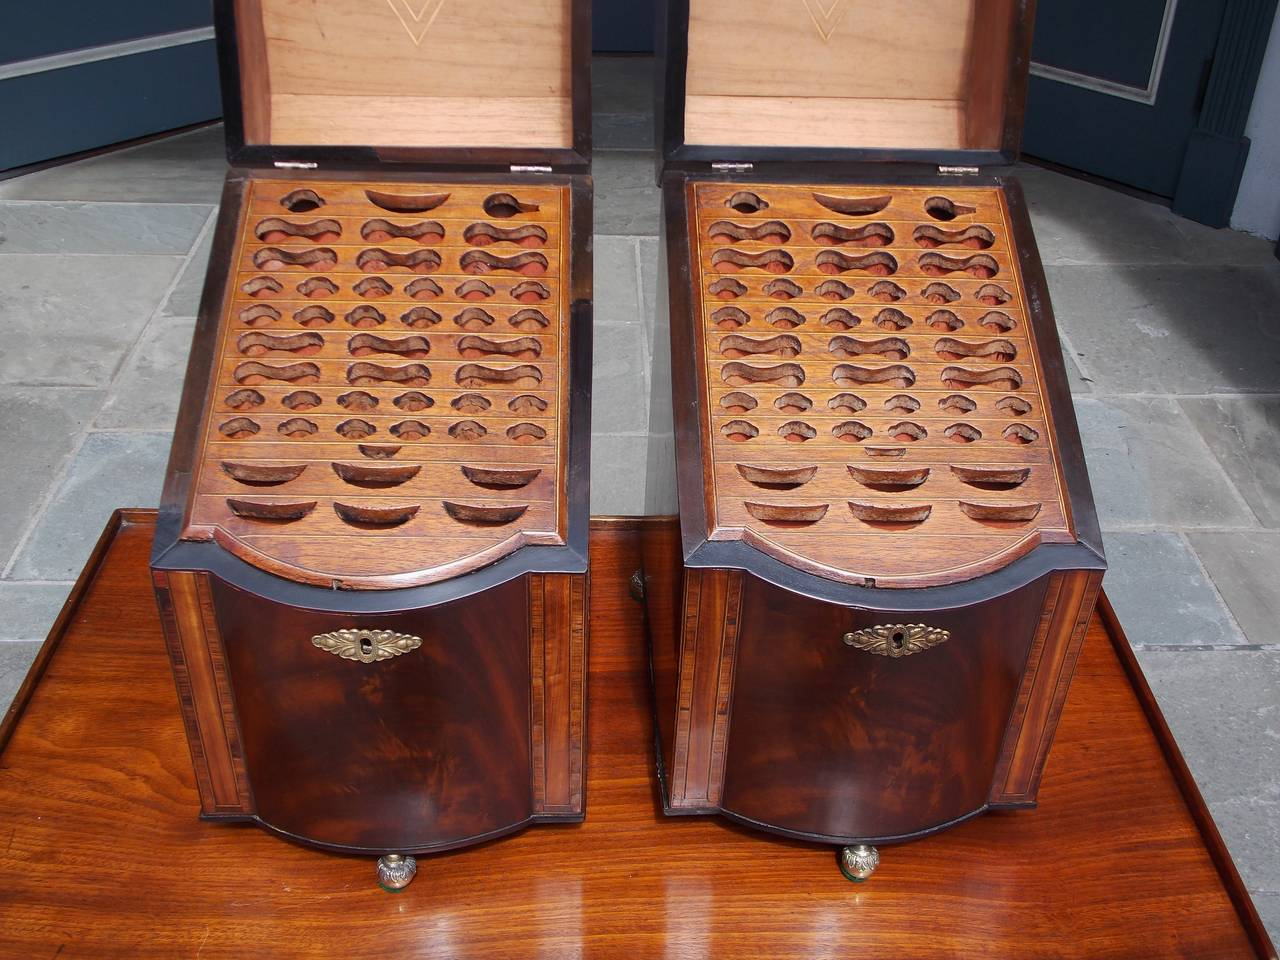 Pair of American Mahogany Inlaid Cutlery Boxes Charleston, SC, Circa 1790 For Sale 3